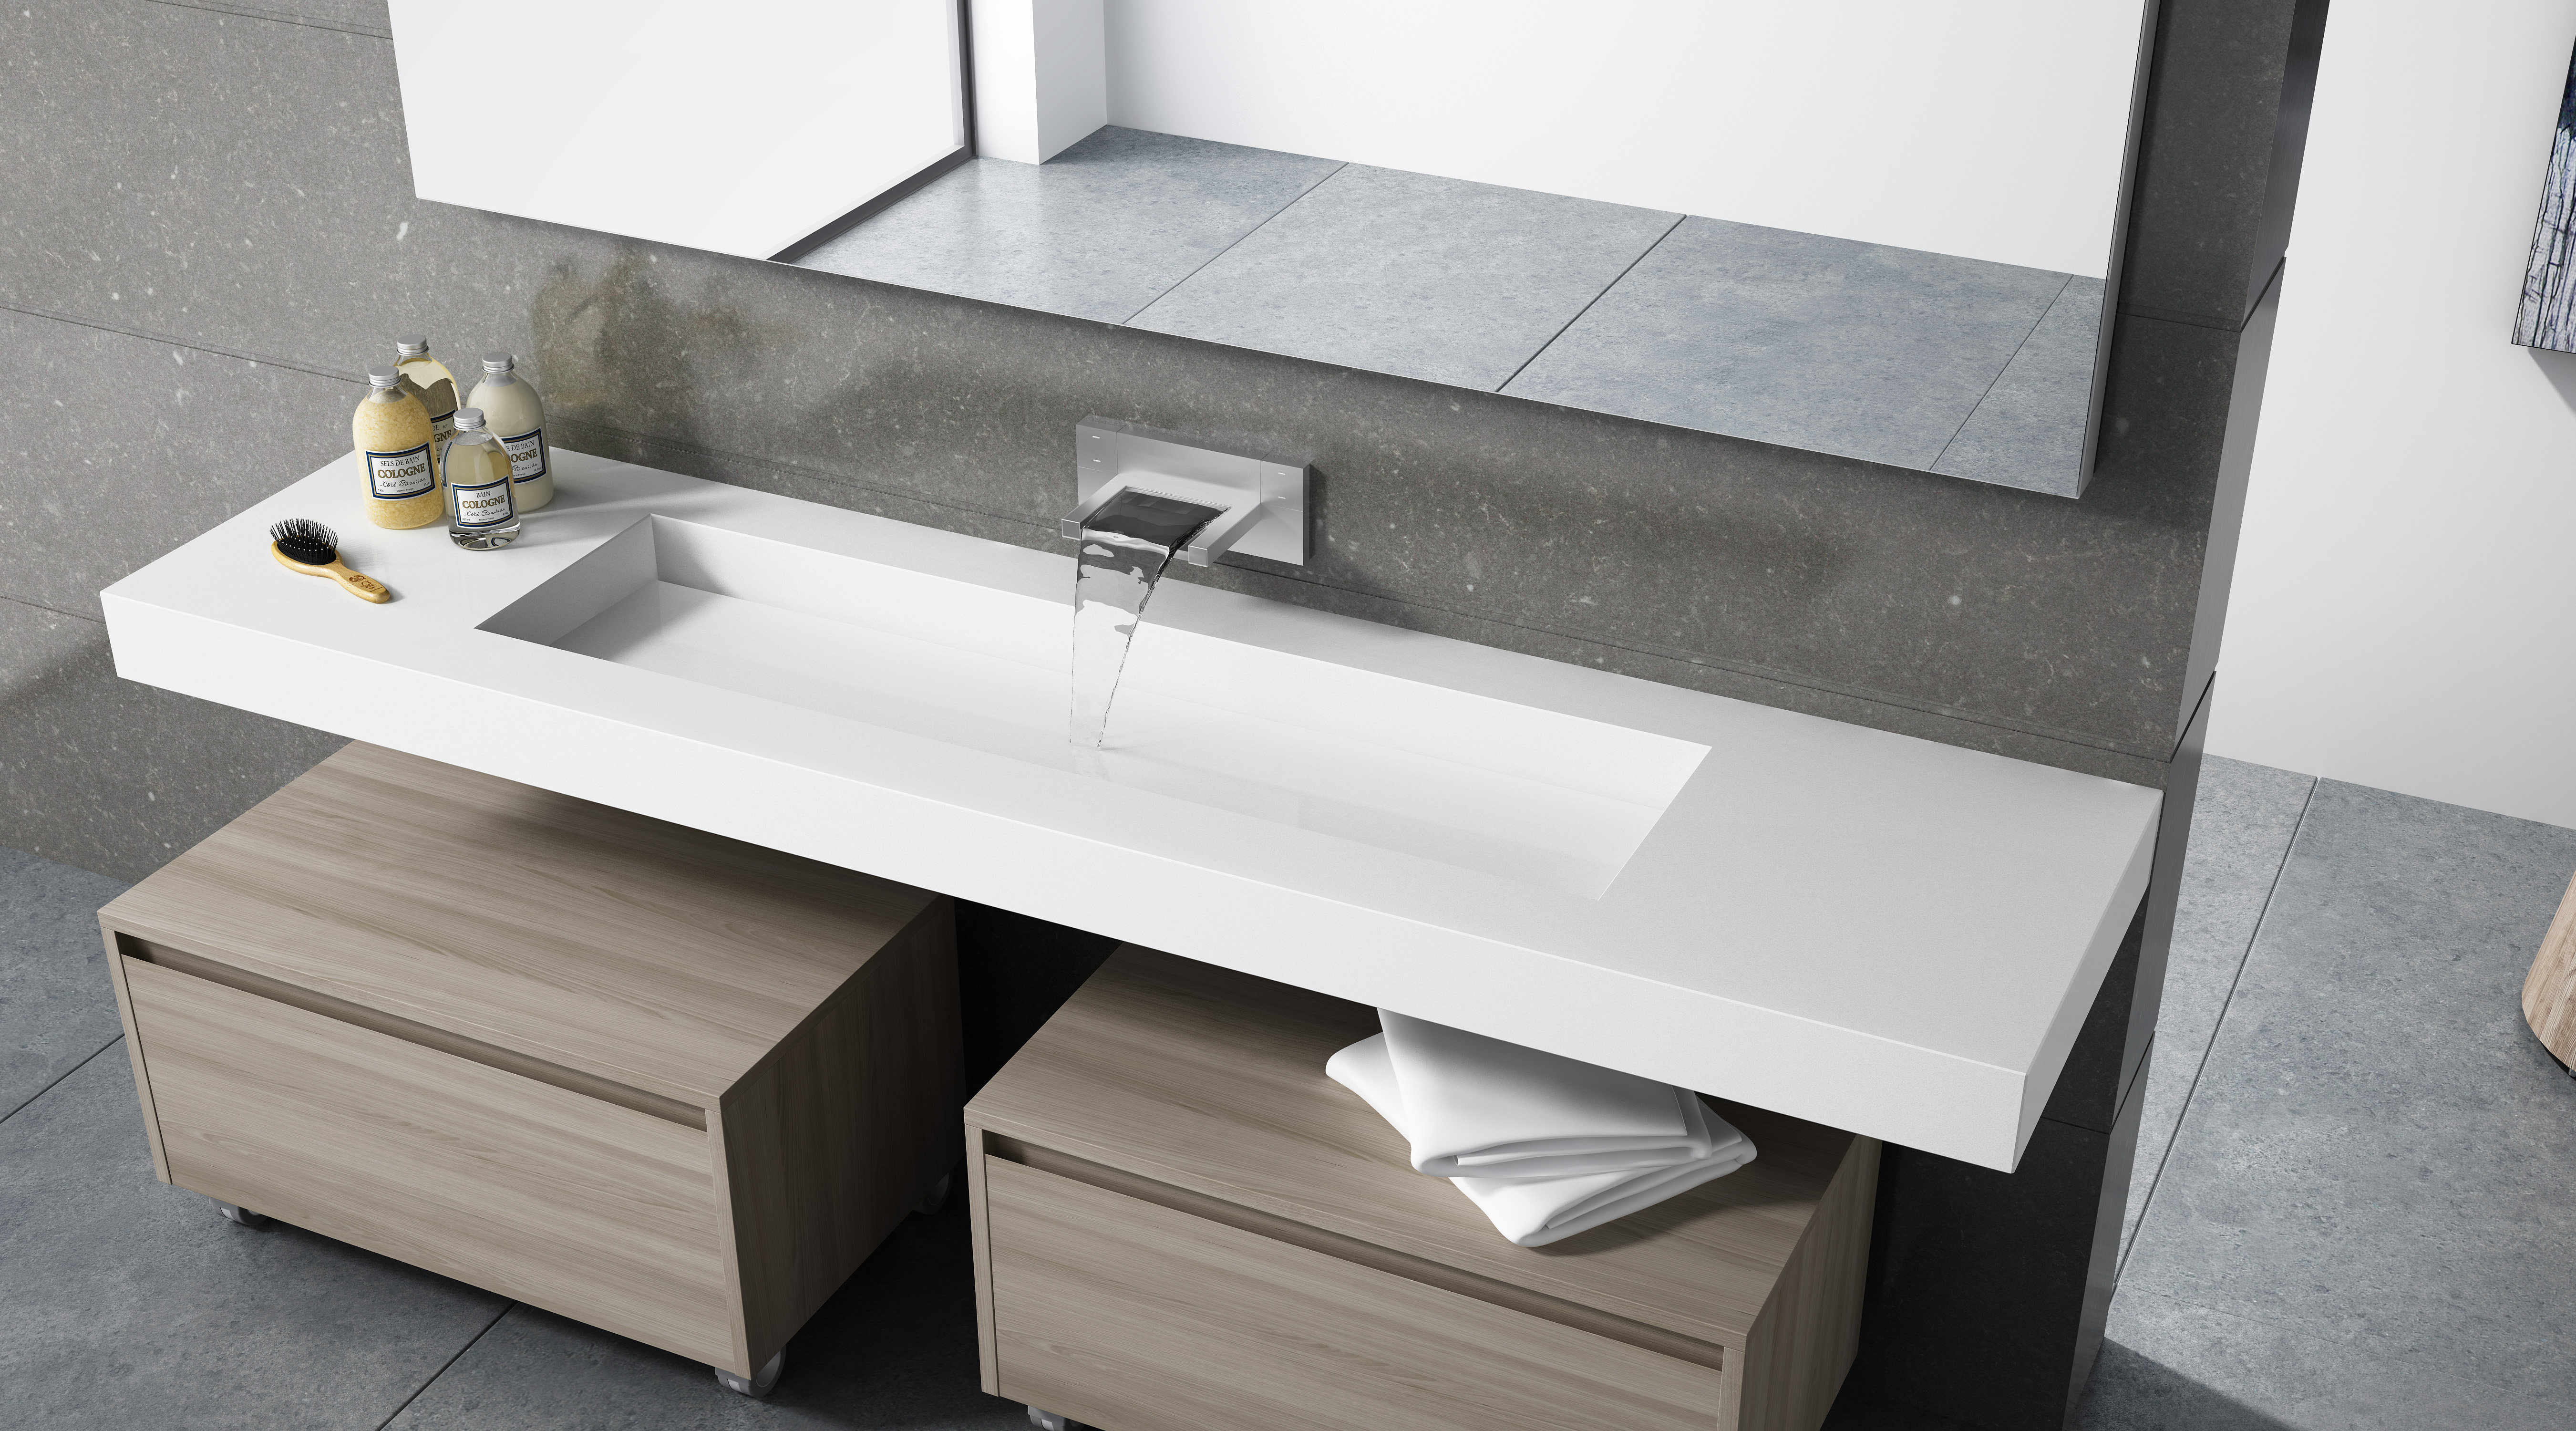 cosentino group cosentino expands its exclusive bath collection for download click image